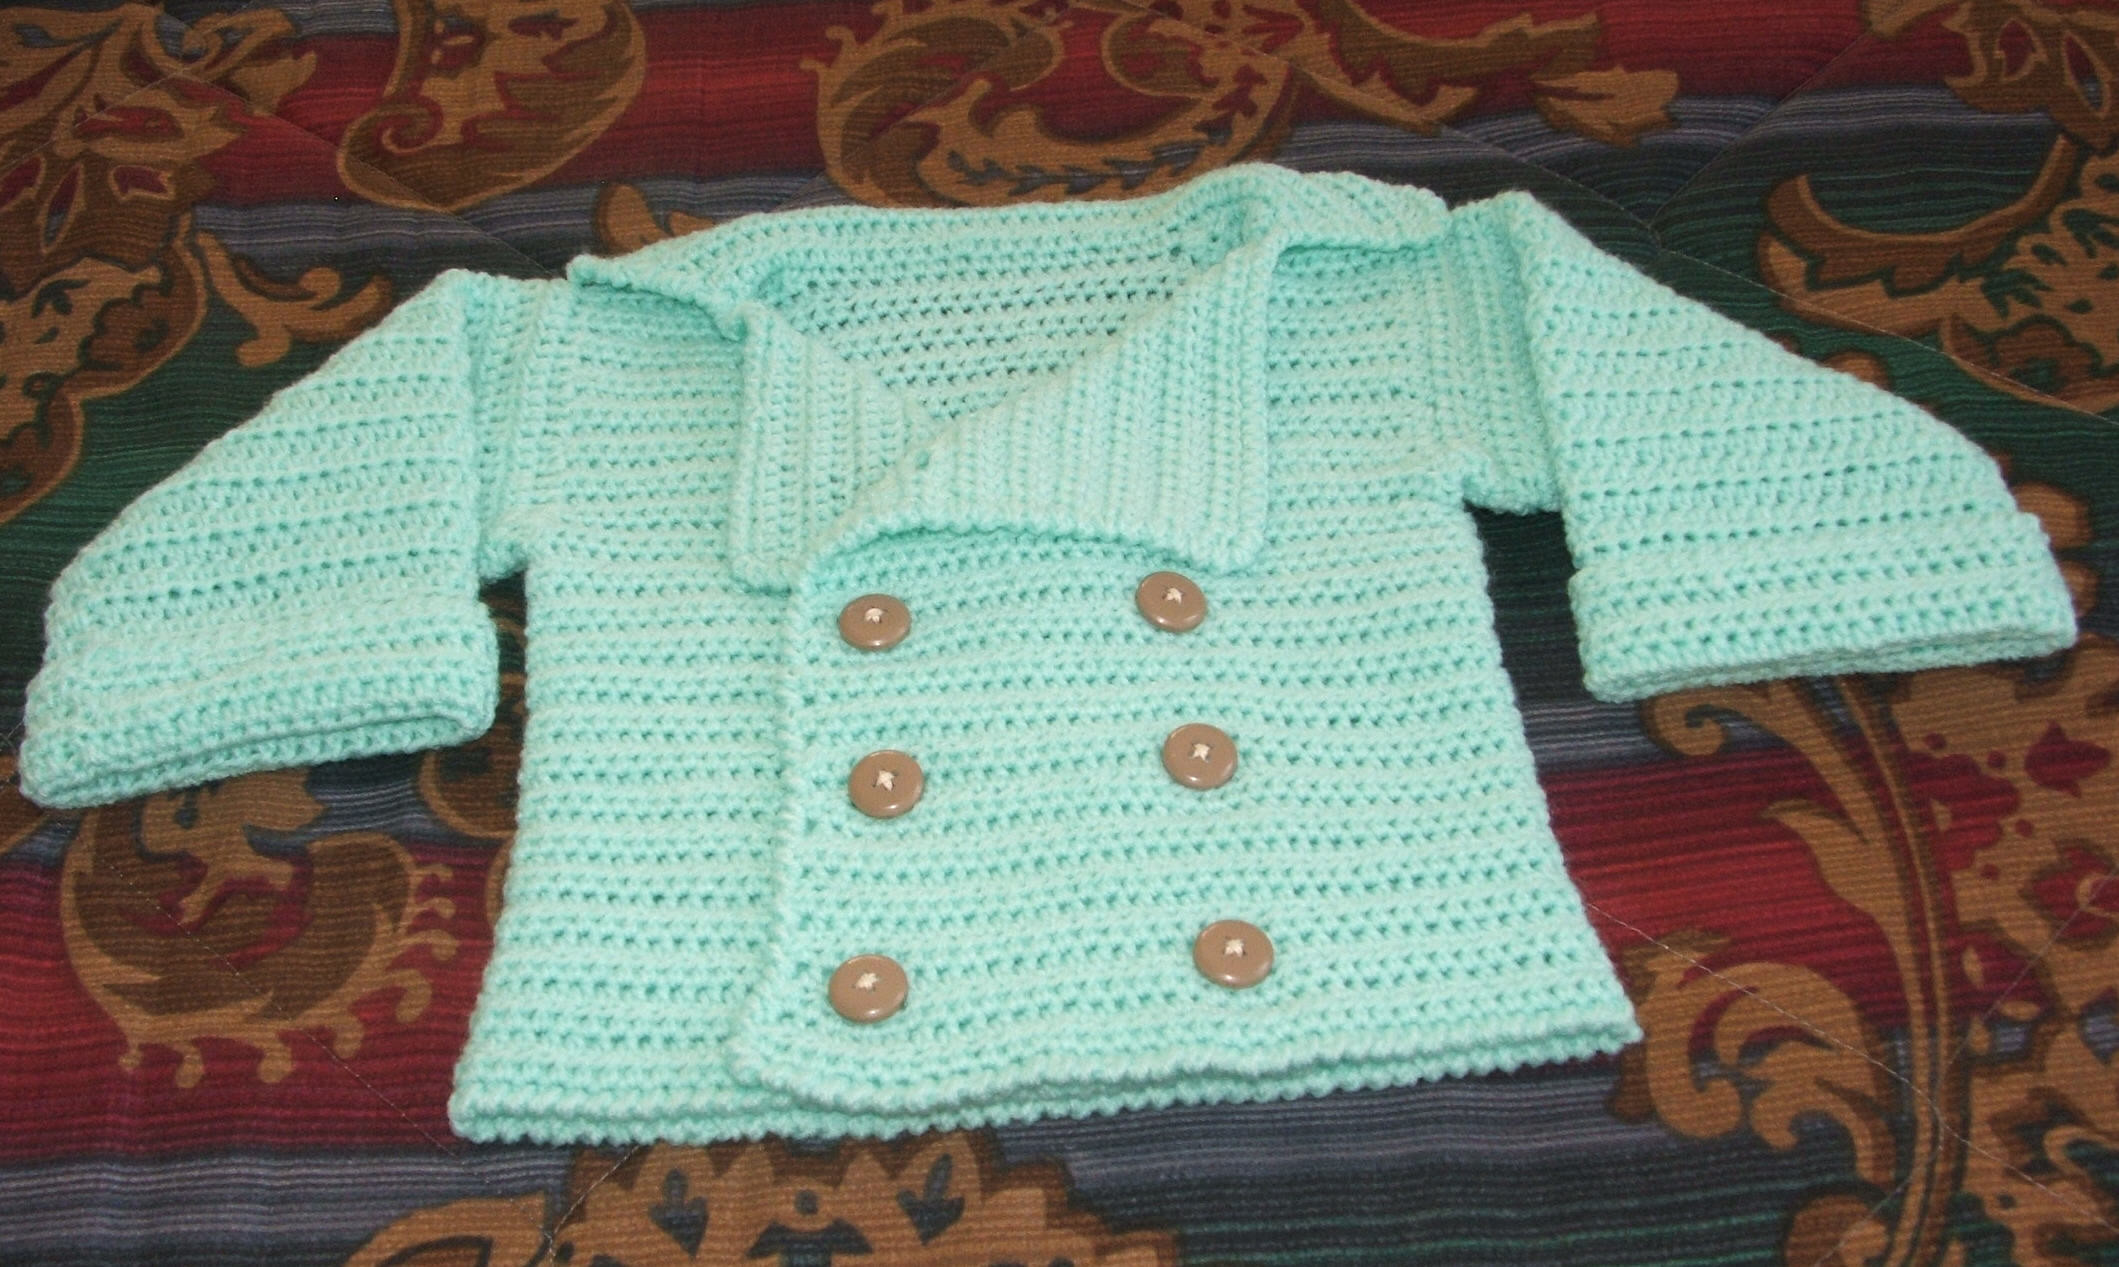 Crochet Sweater Pattern Free Unique Infant's Double Breasted Sweater Free Crochet Pattern Of Unique 50 Images Crochet Sweater Pattern Free